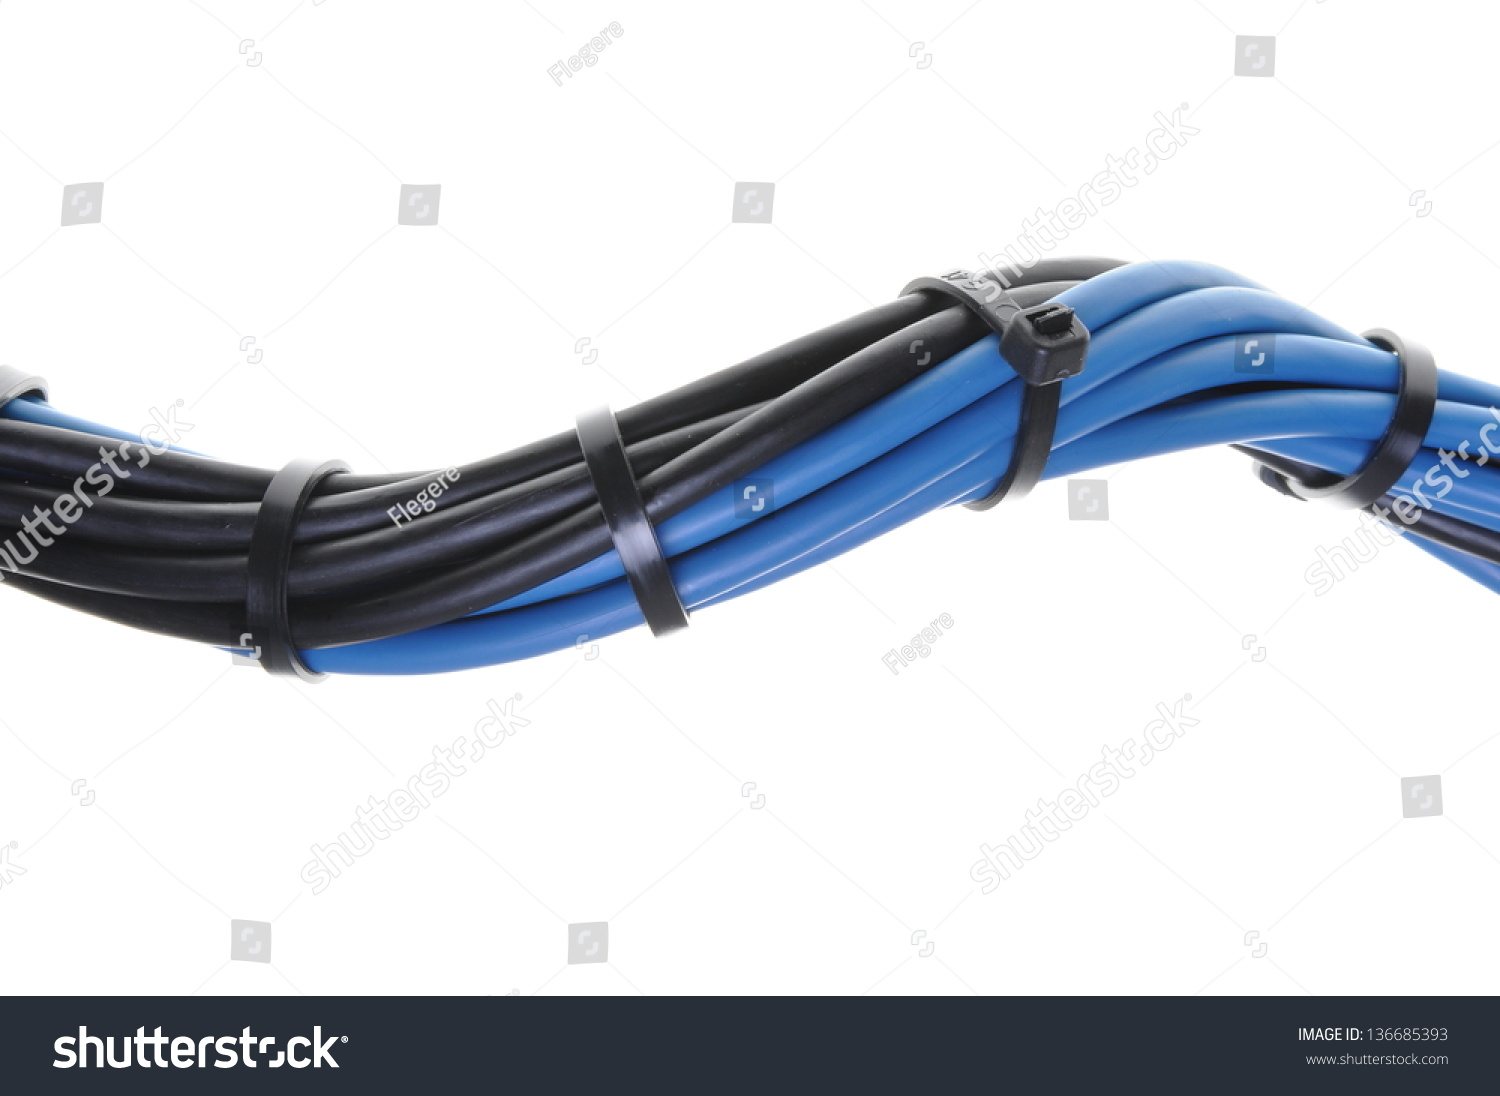 Blue Black Electrical Wires Cable Ties Stock Photo 136685393 ...